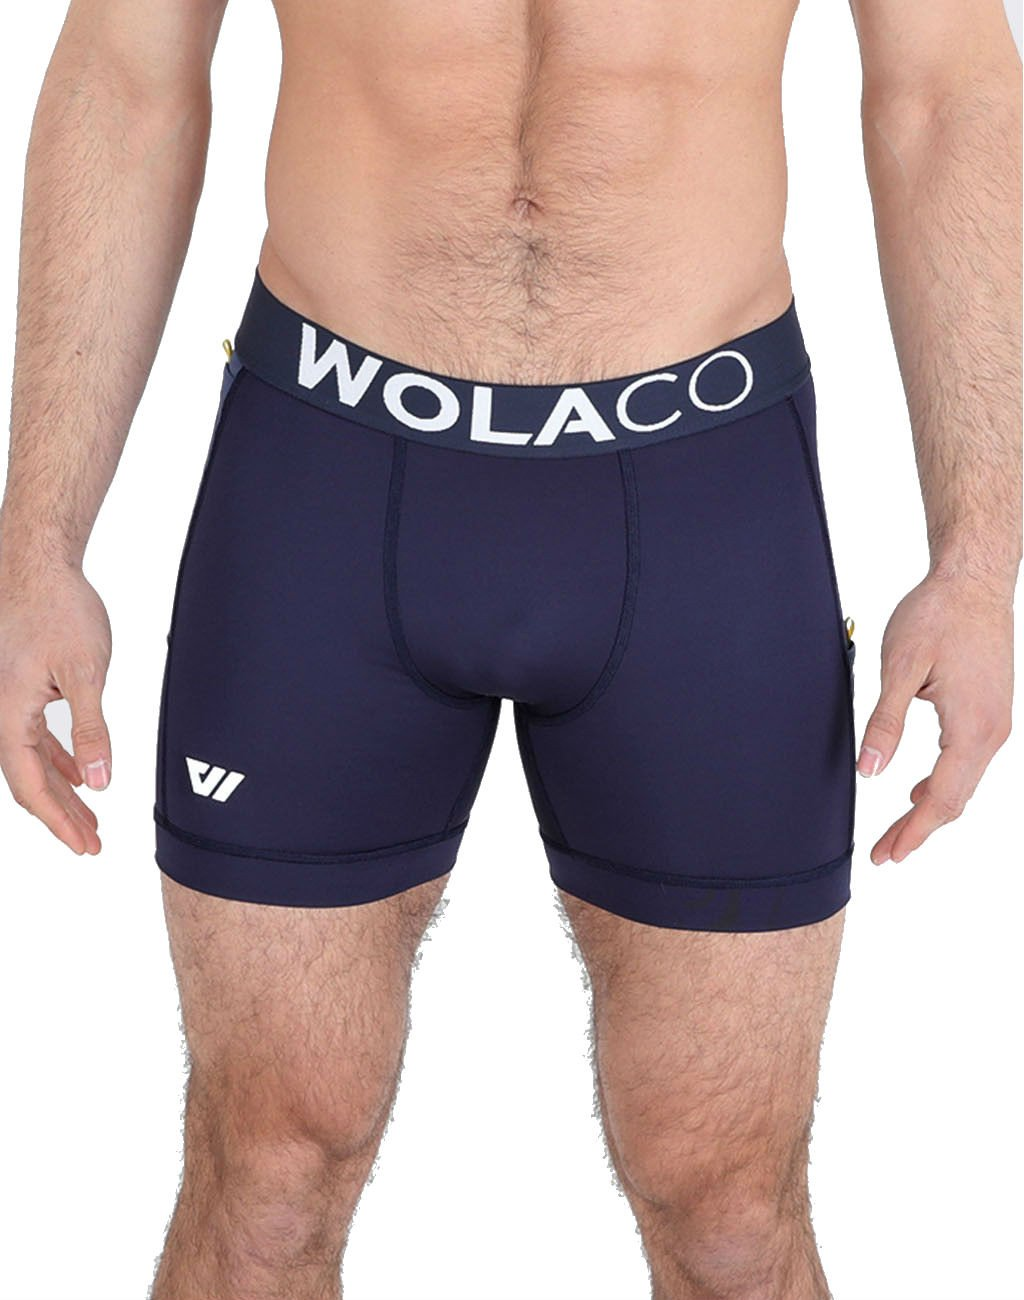 Compression Shorts wolaco north moore compression shorts 6in mens compression shorts -  runkeeper official storenavy_master_image GZPPOMJ